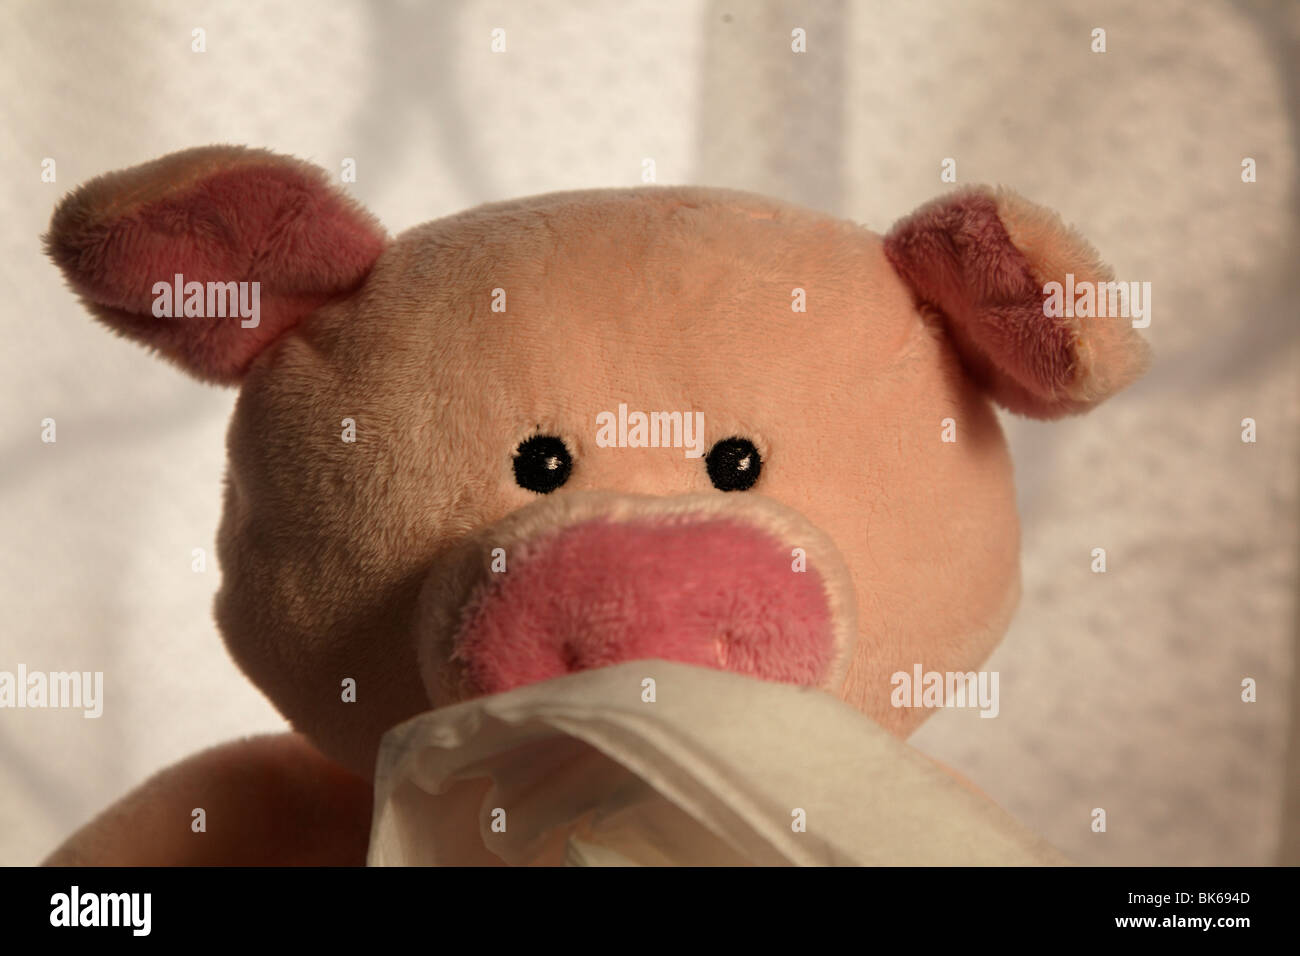 Toy pig with paper handkerchief, head shot. - Stock Image